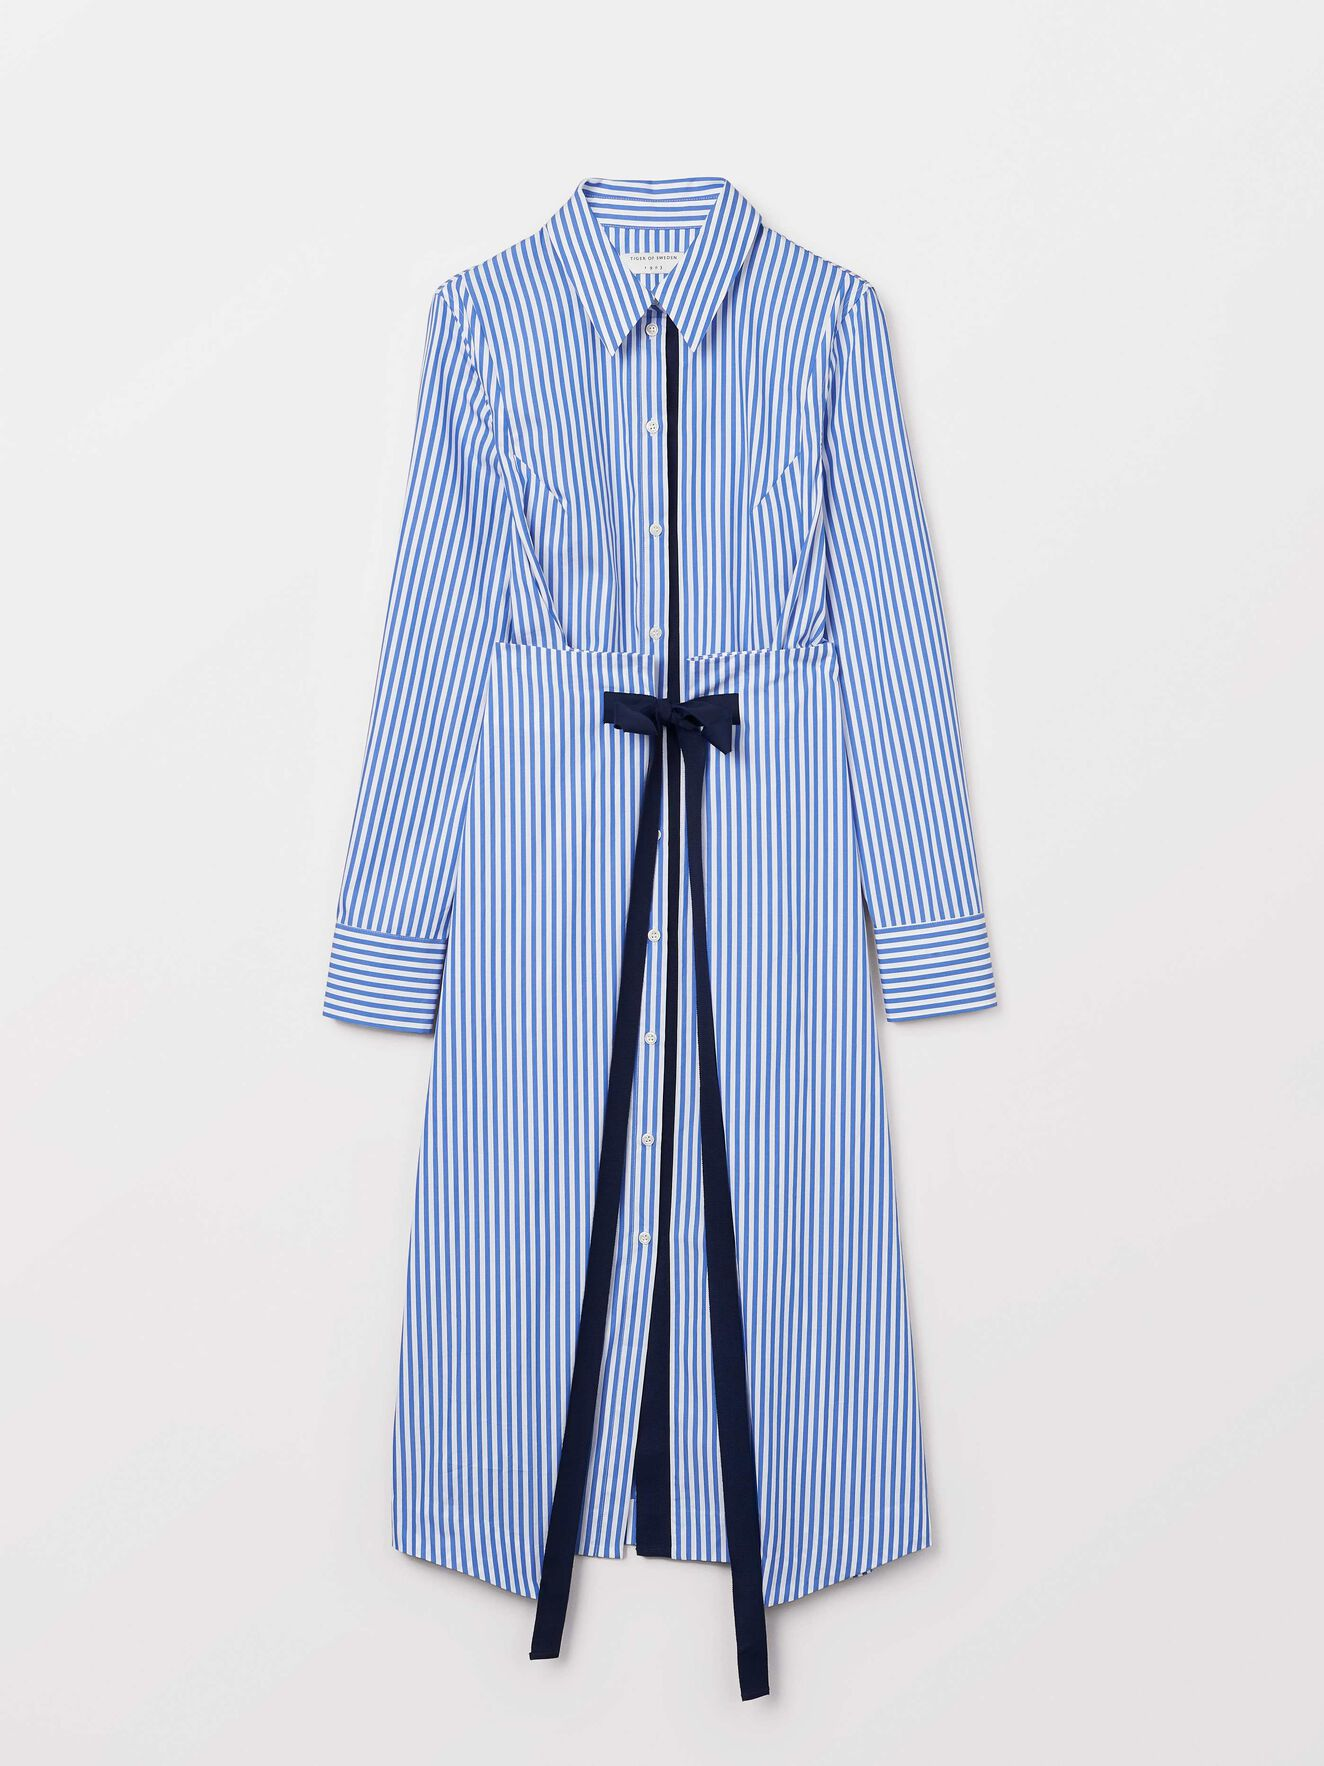 Sydberg S Dress in Airy Blue from Tiger of Sweden